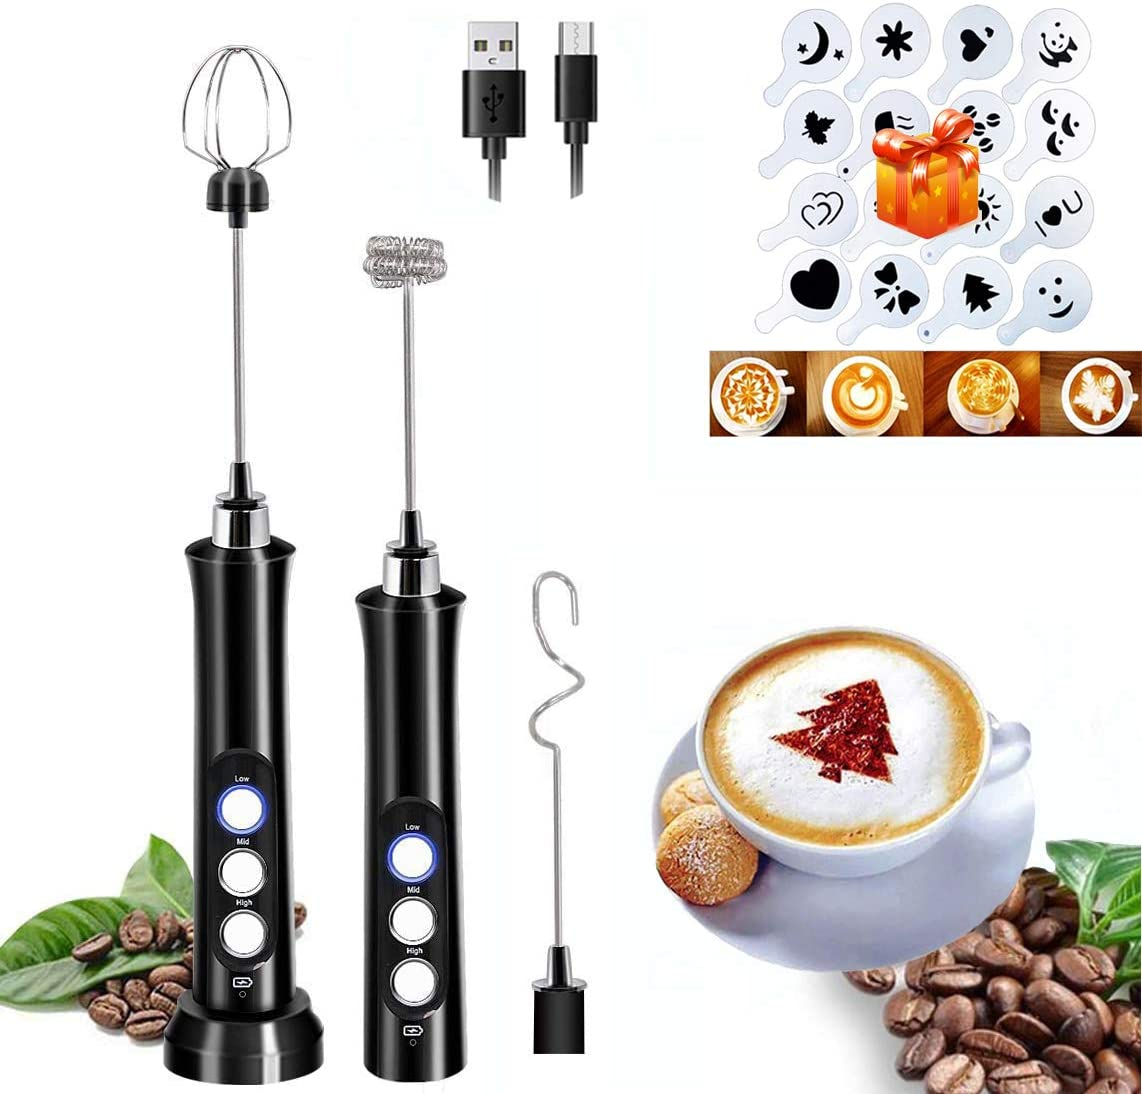 Milk Frother Handheld USB Rechargeable Foam Maker with 16 Pcs Art Stencils, 3 Speeds Electric Egg Beater, Stainless Coffee Frother with 3 Whisks for Bulletproof Coffee, Latte, Cappuccino, Matcha, Hot Chocolate